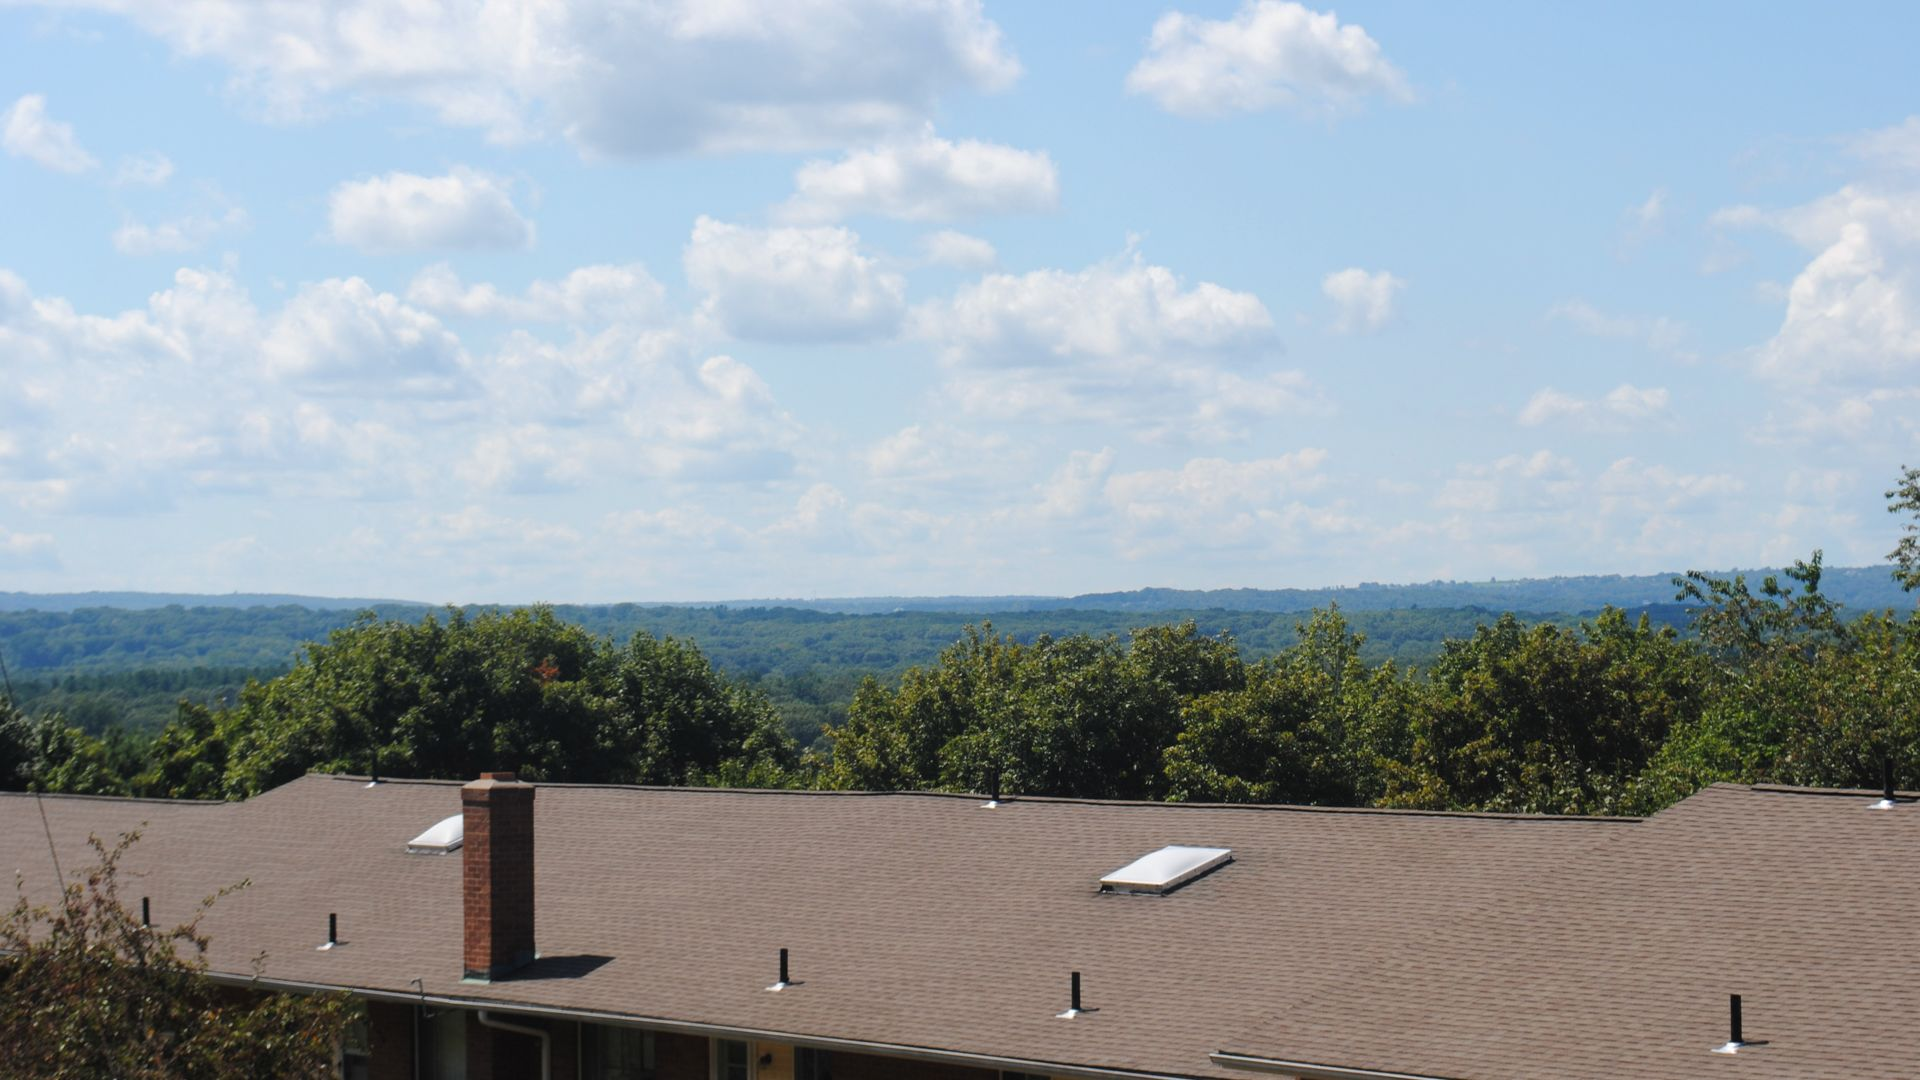 Summit and Birch Hill Apartments - Views